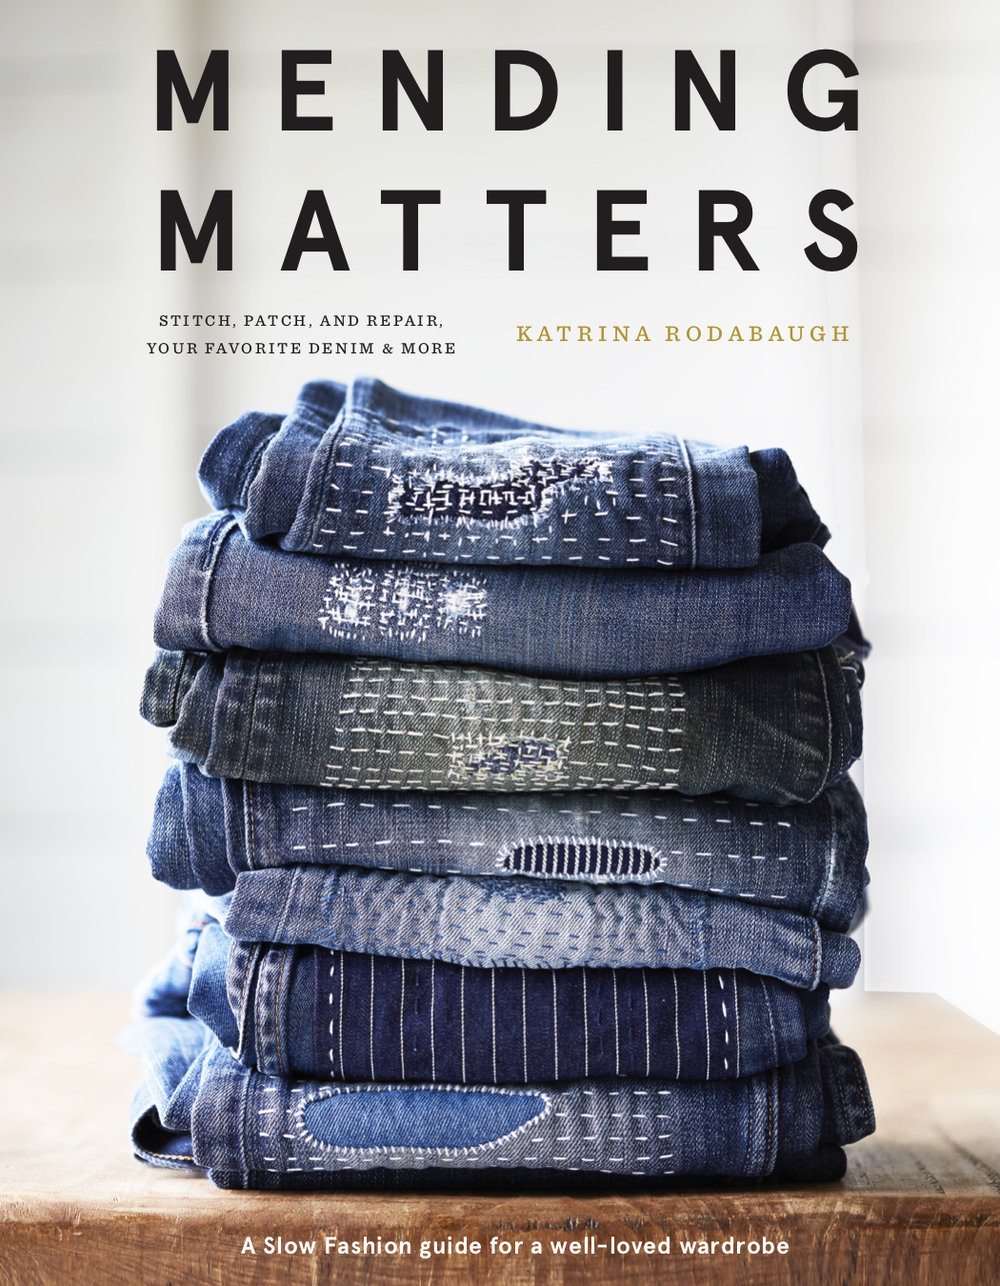 MendingMatters_approved_cover_hs-copy.jpg